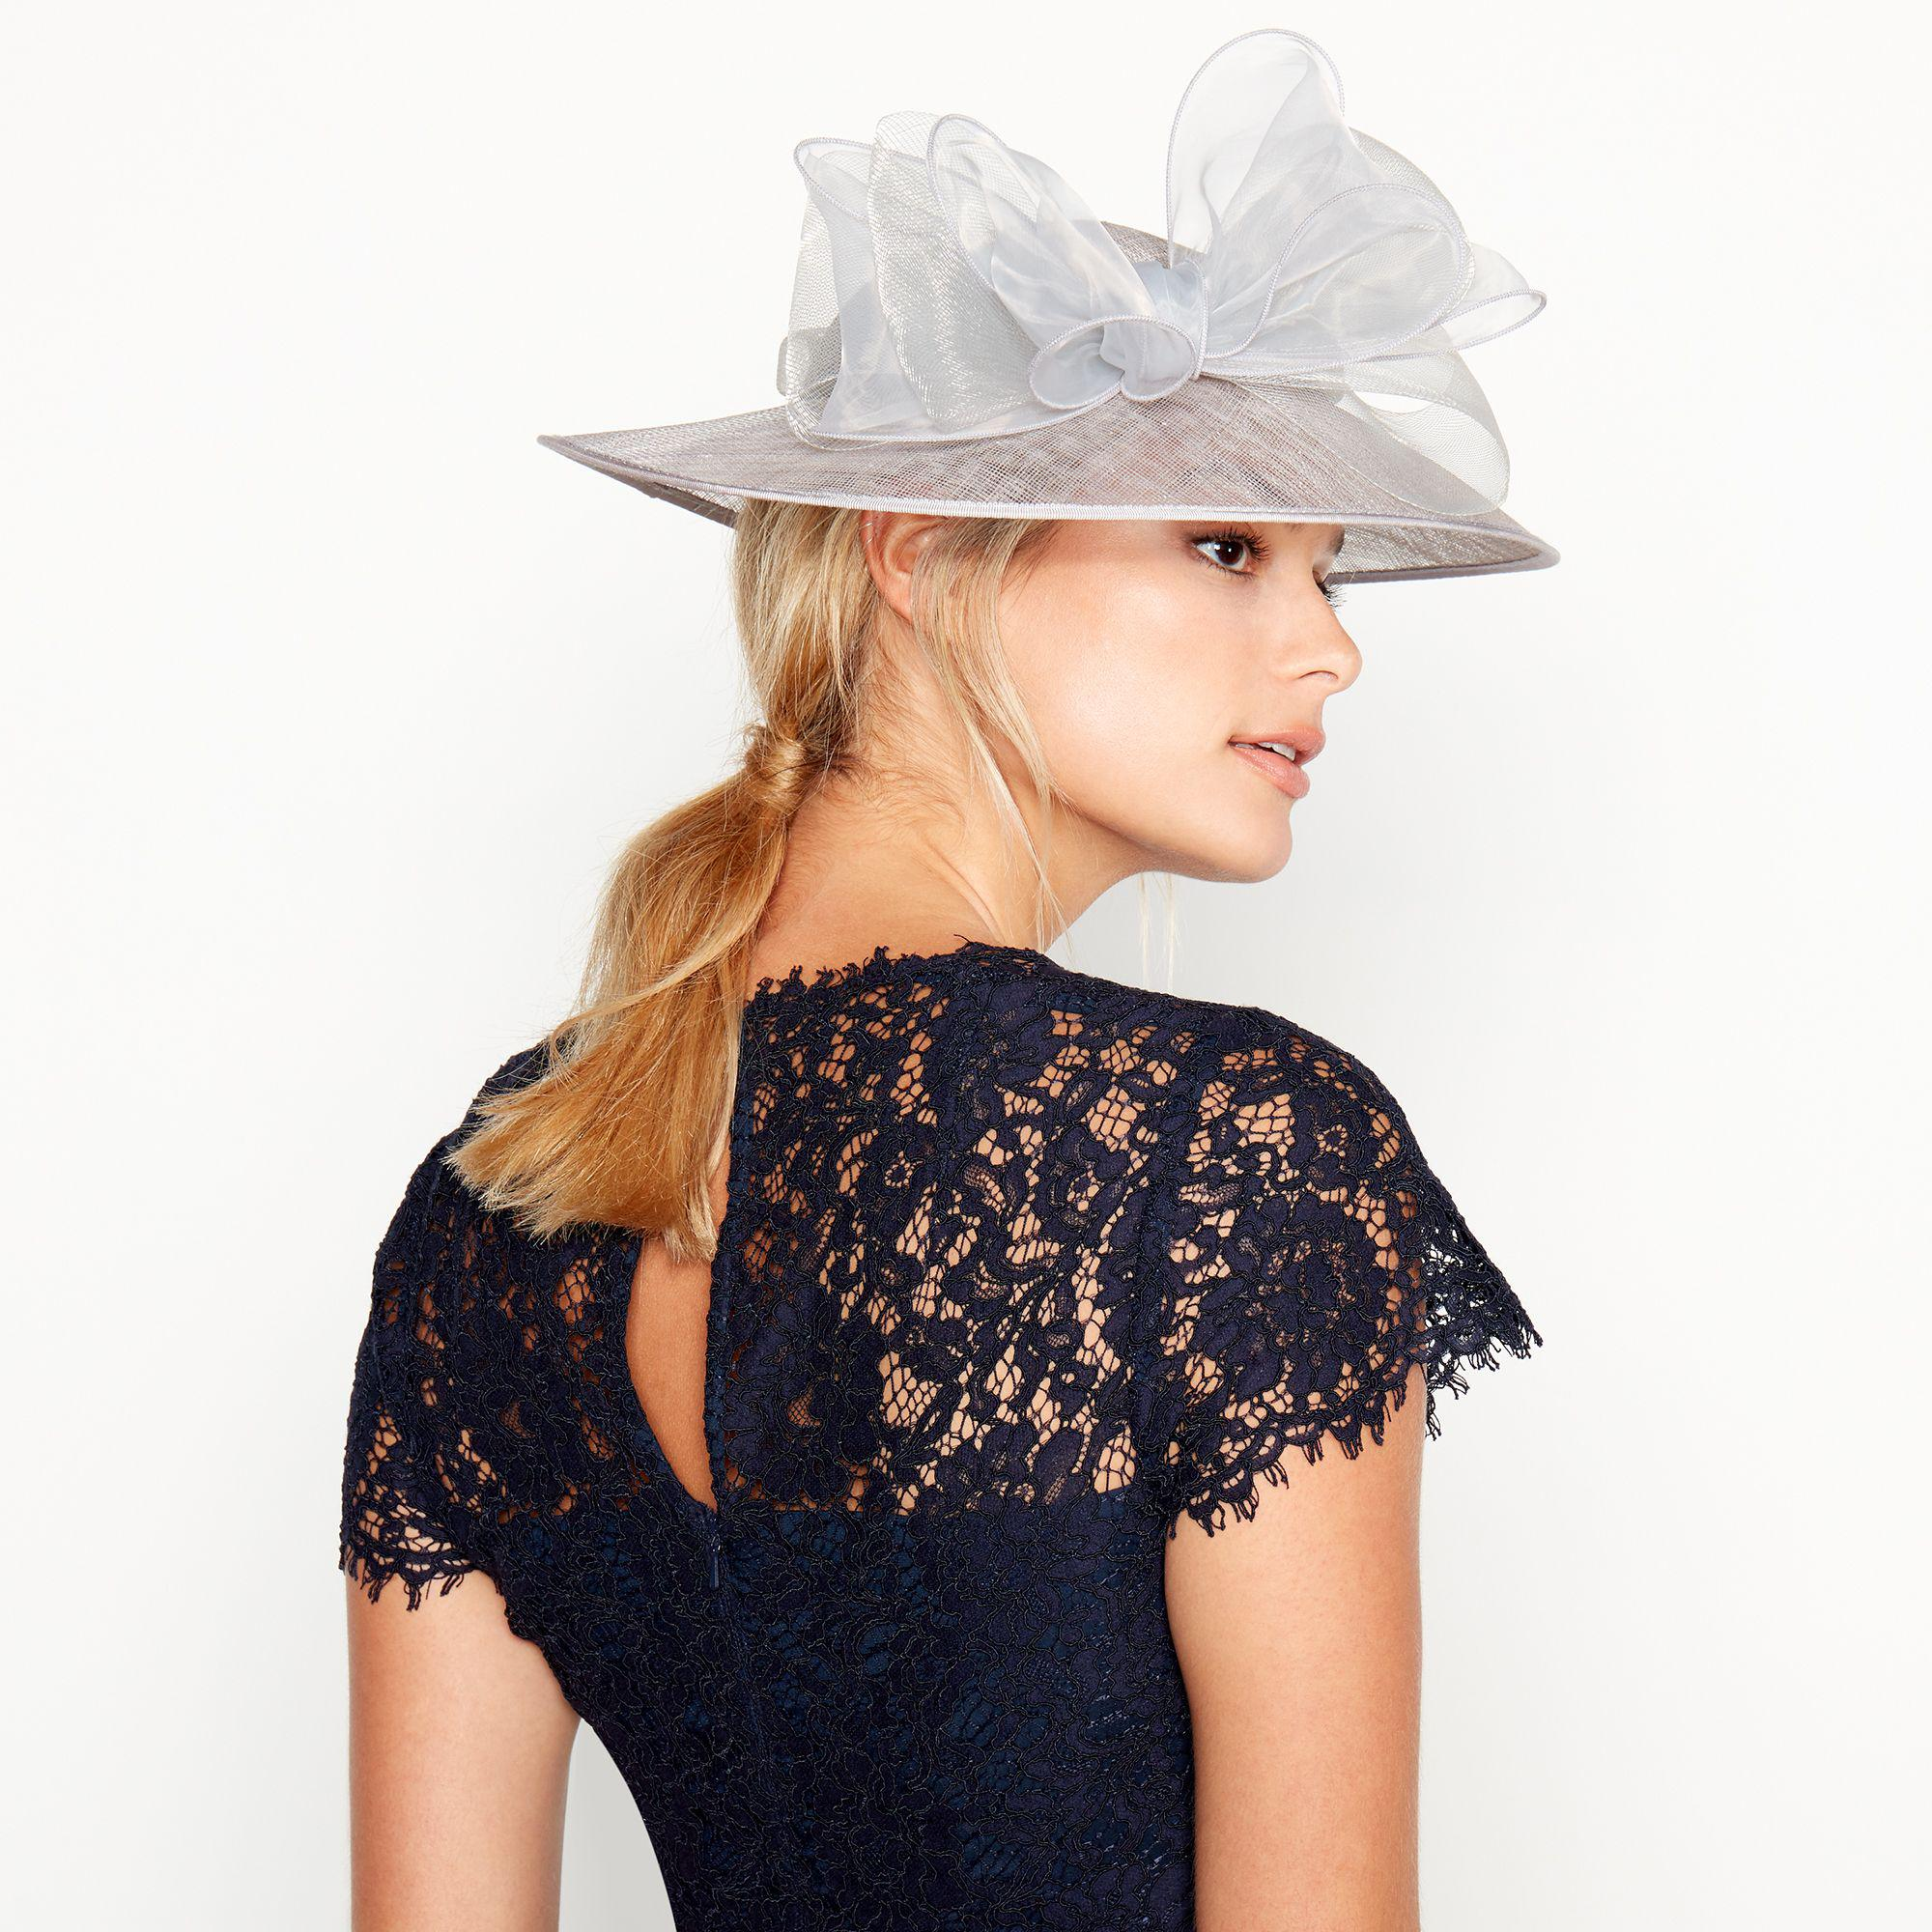 Début Silver Crin Trim Bow Saucer Hat in Metallic - Lyst 5afb27223153